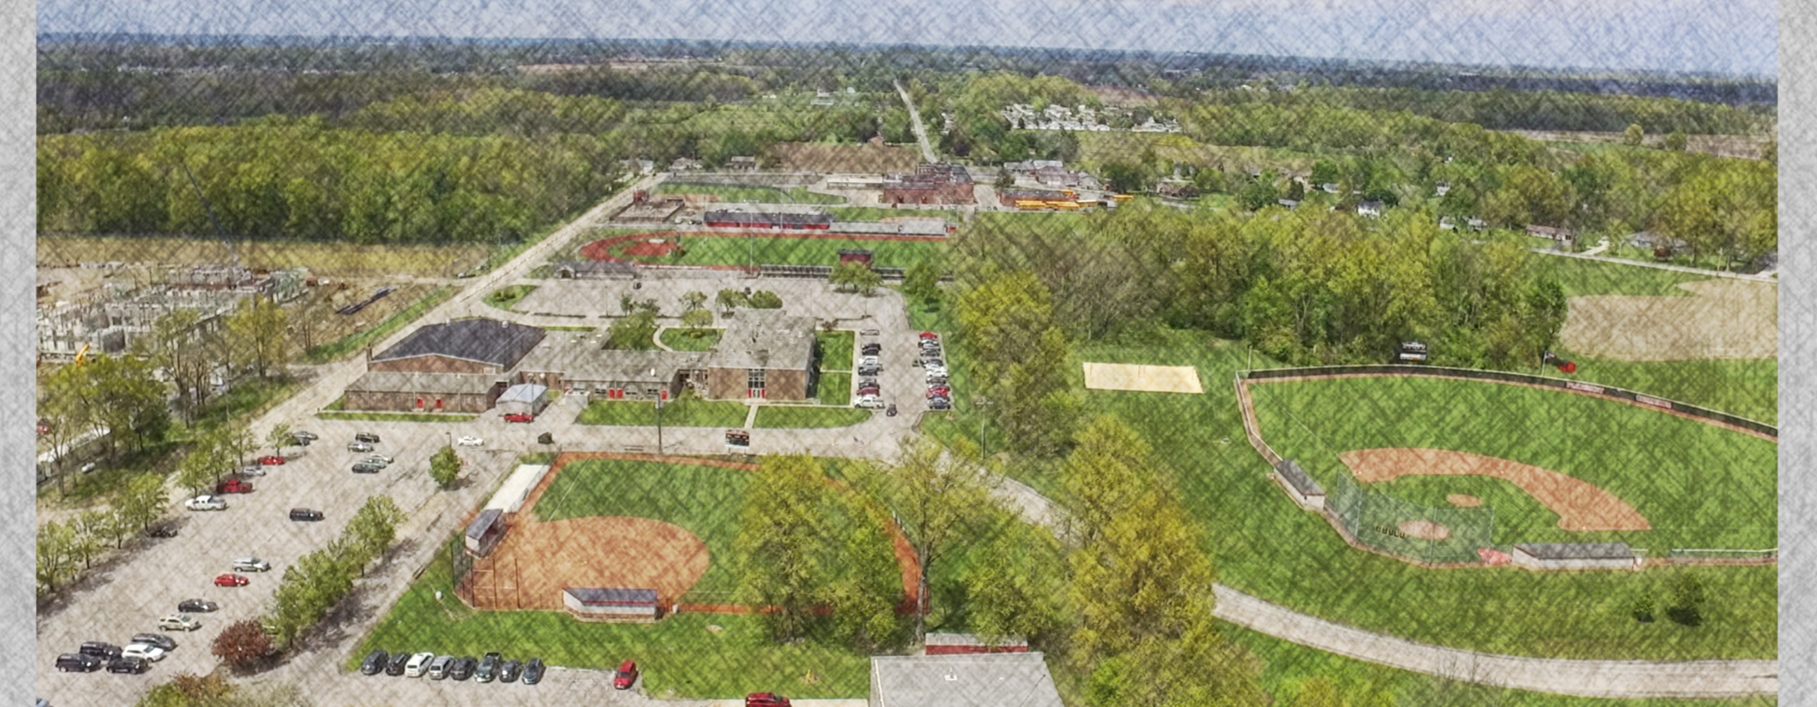 Aerial View view of Campus